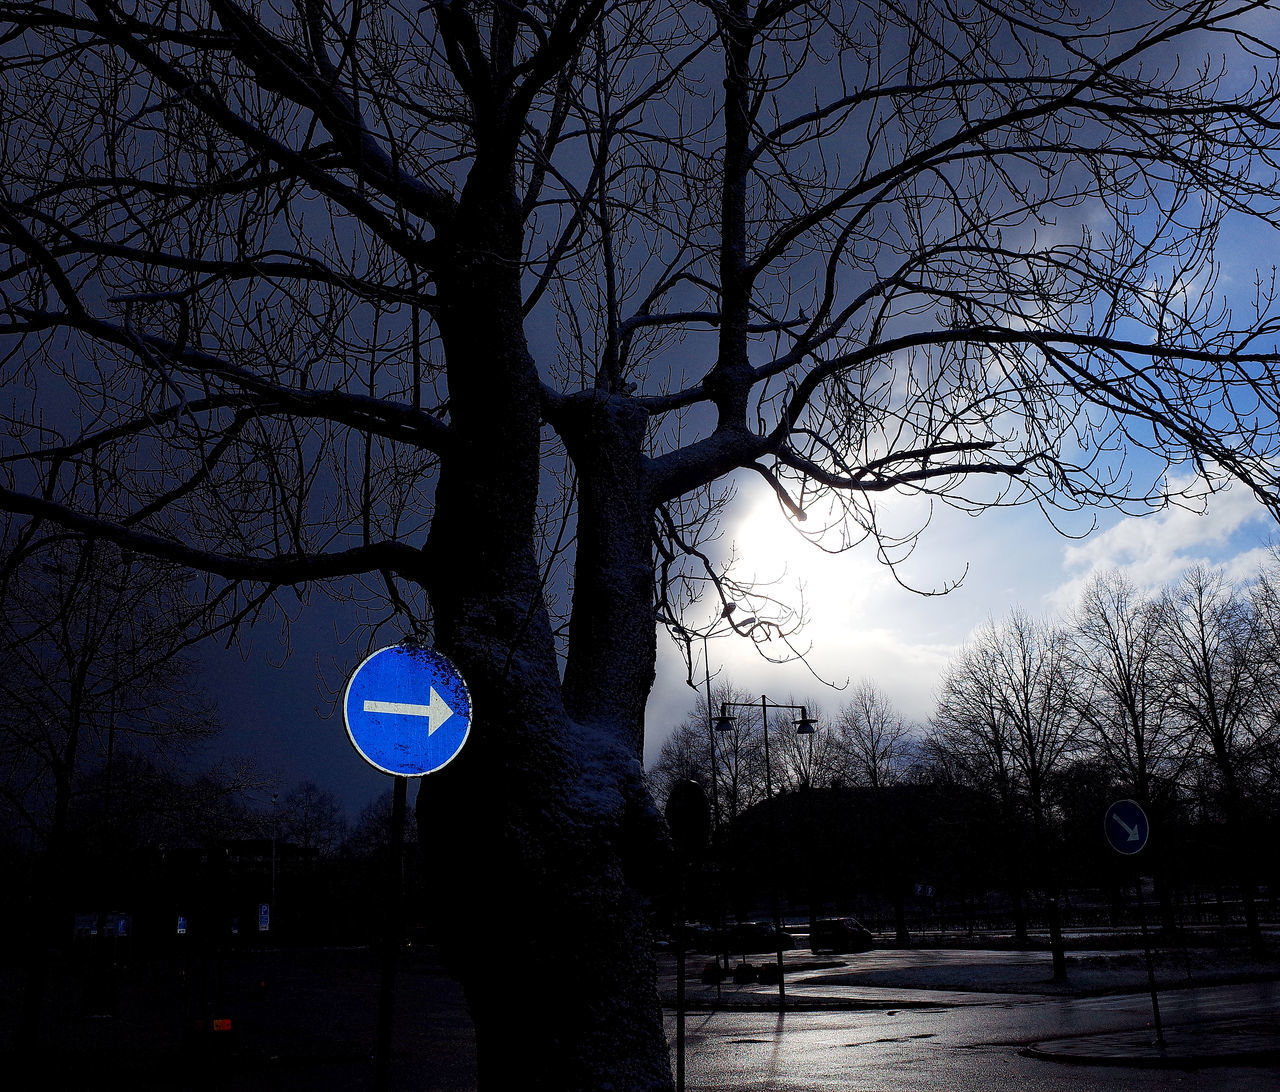 bare tree, tree, branch, night, nature, winter, no people, outdoors, sky, silhouette, cold temperature, moon, beauty in nature, illuminated, road sign